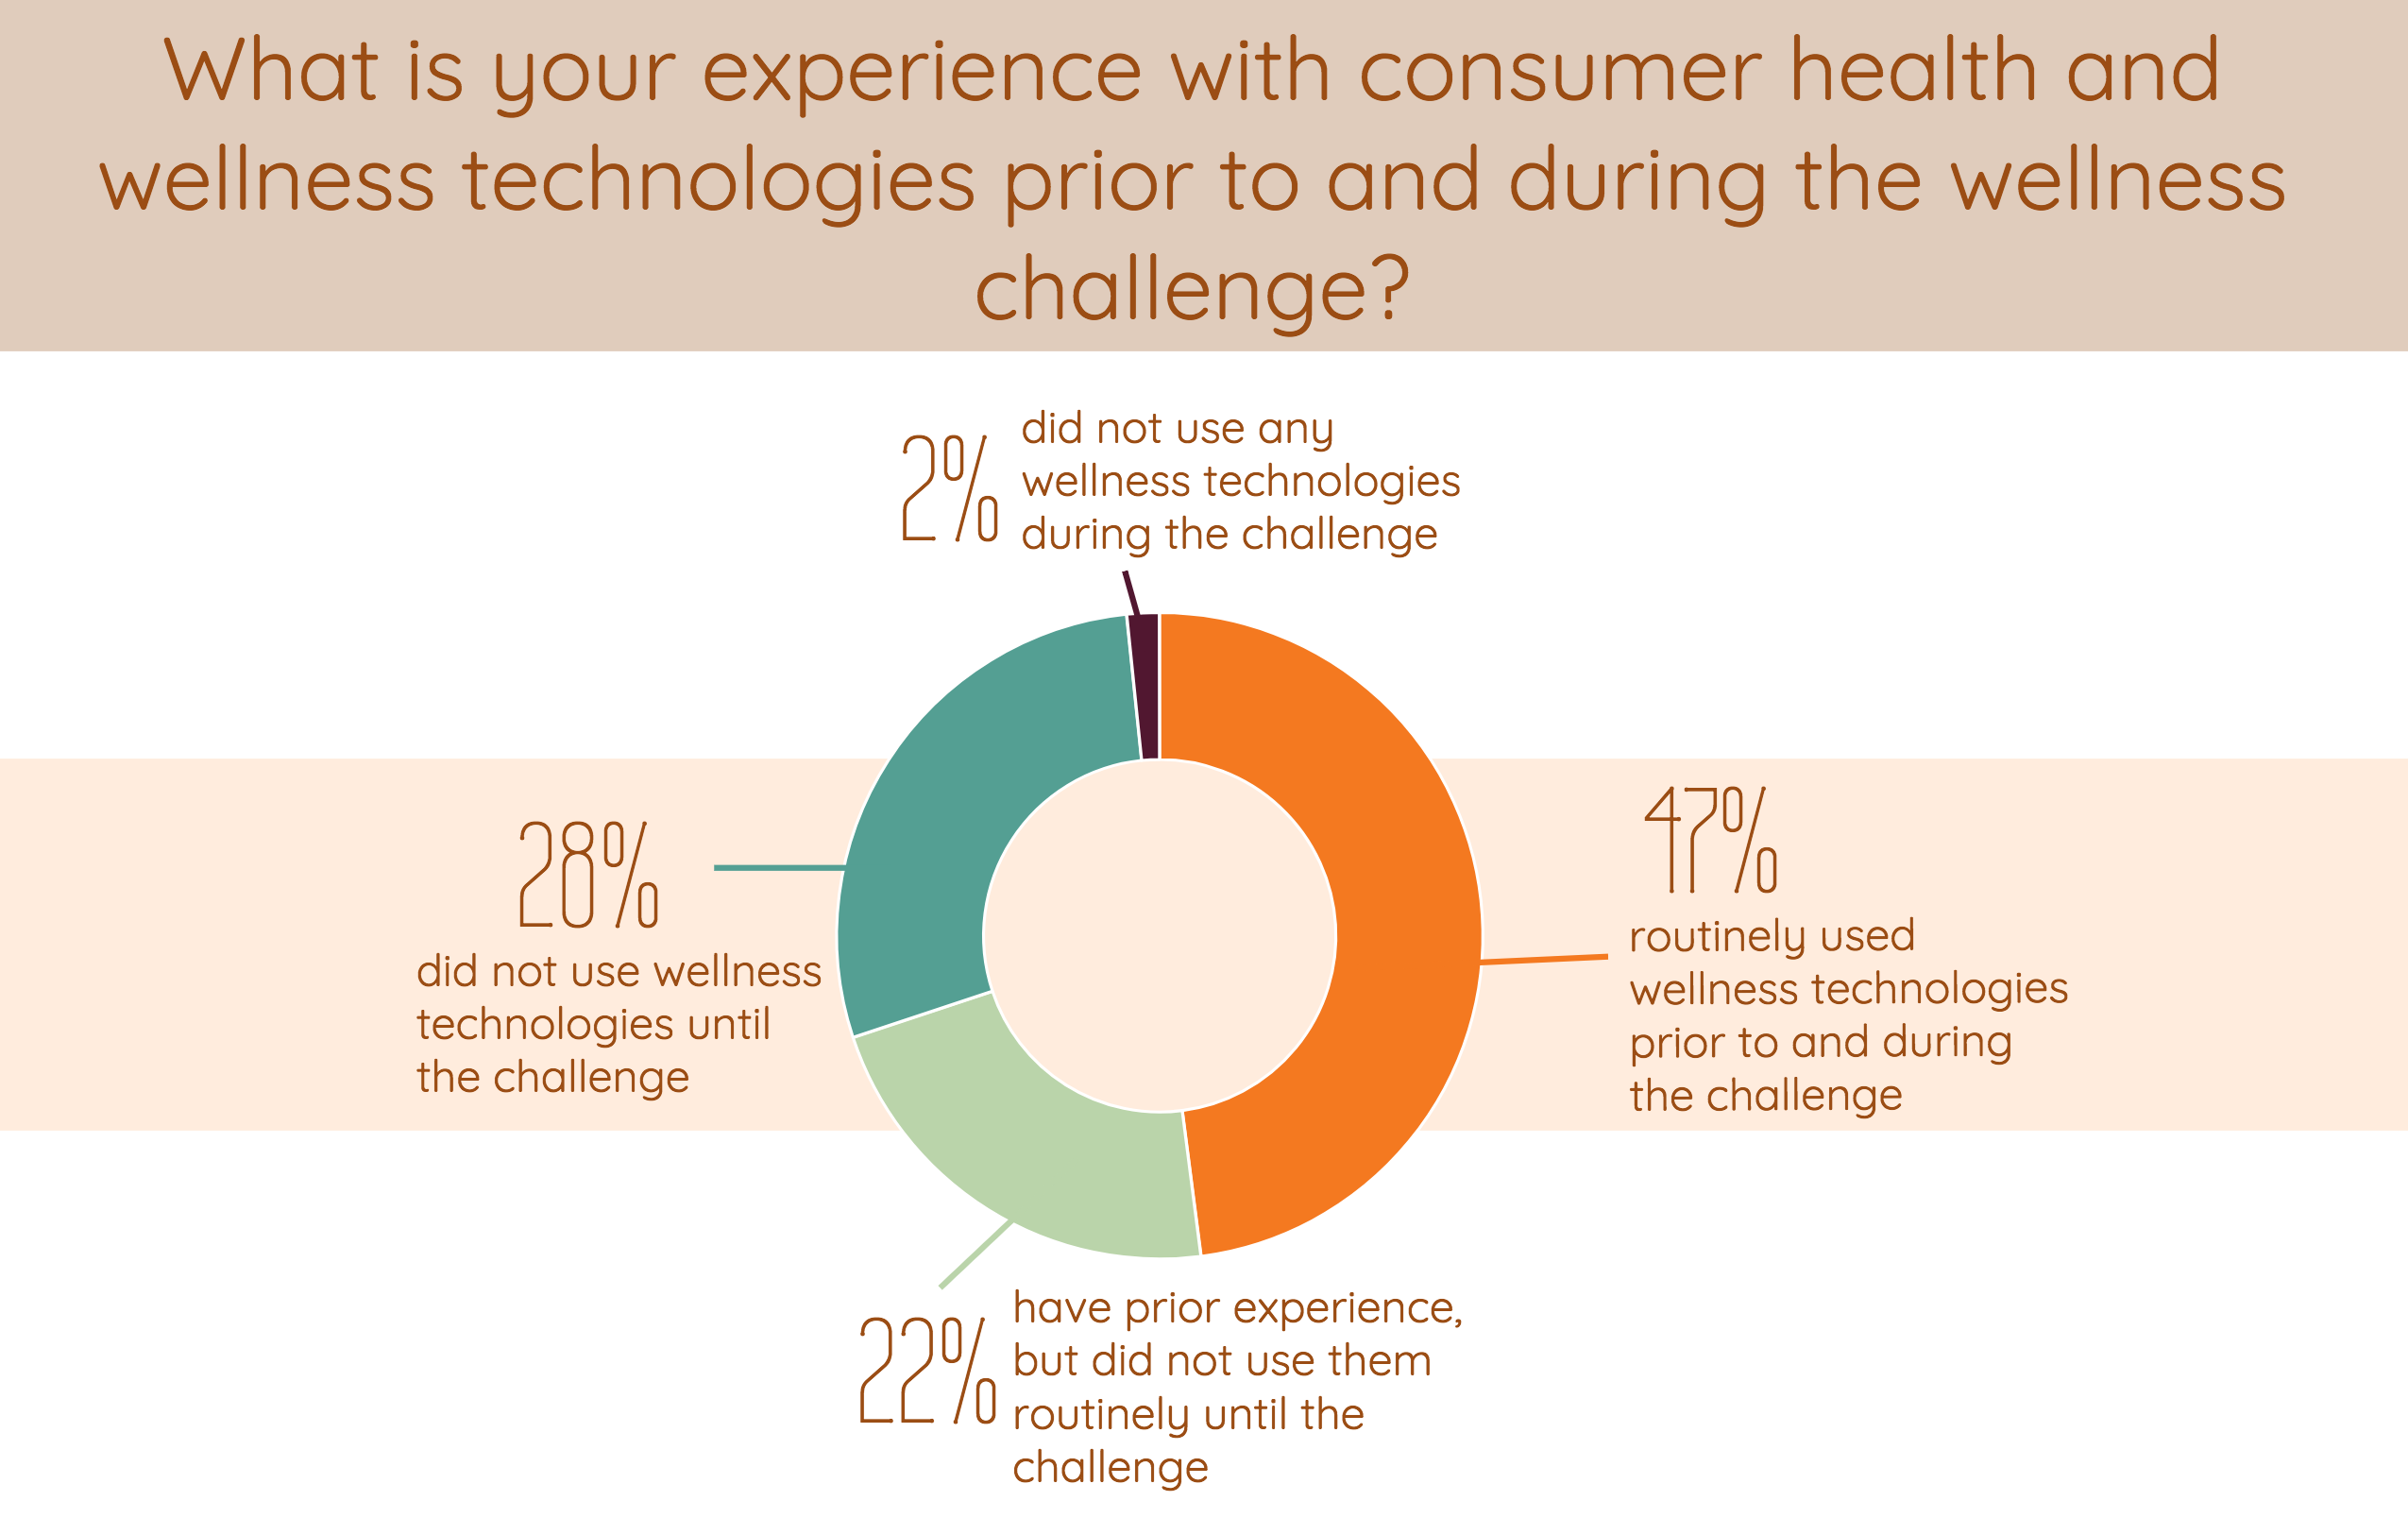 what is your experience with consumer health and wellness technologies prior to and during the wellness challenge?